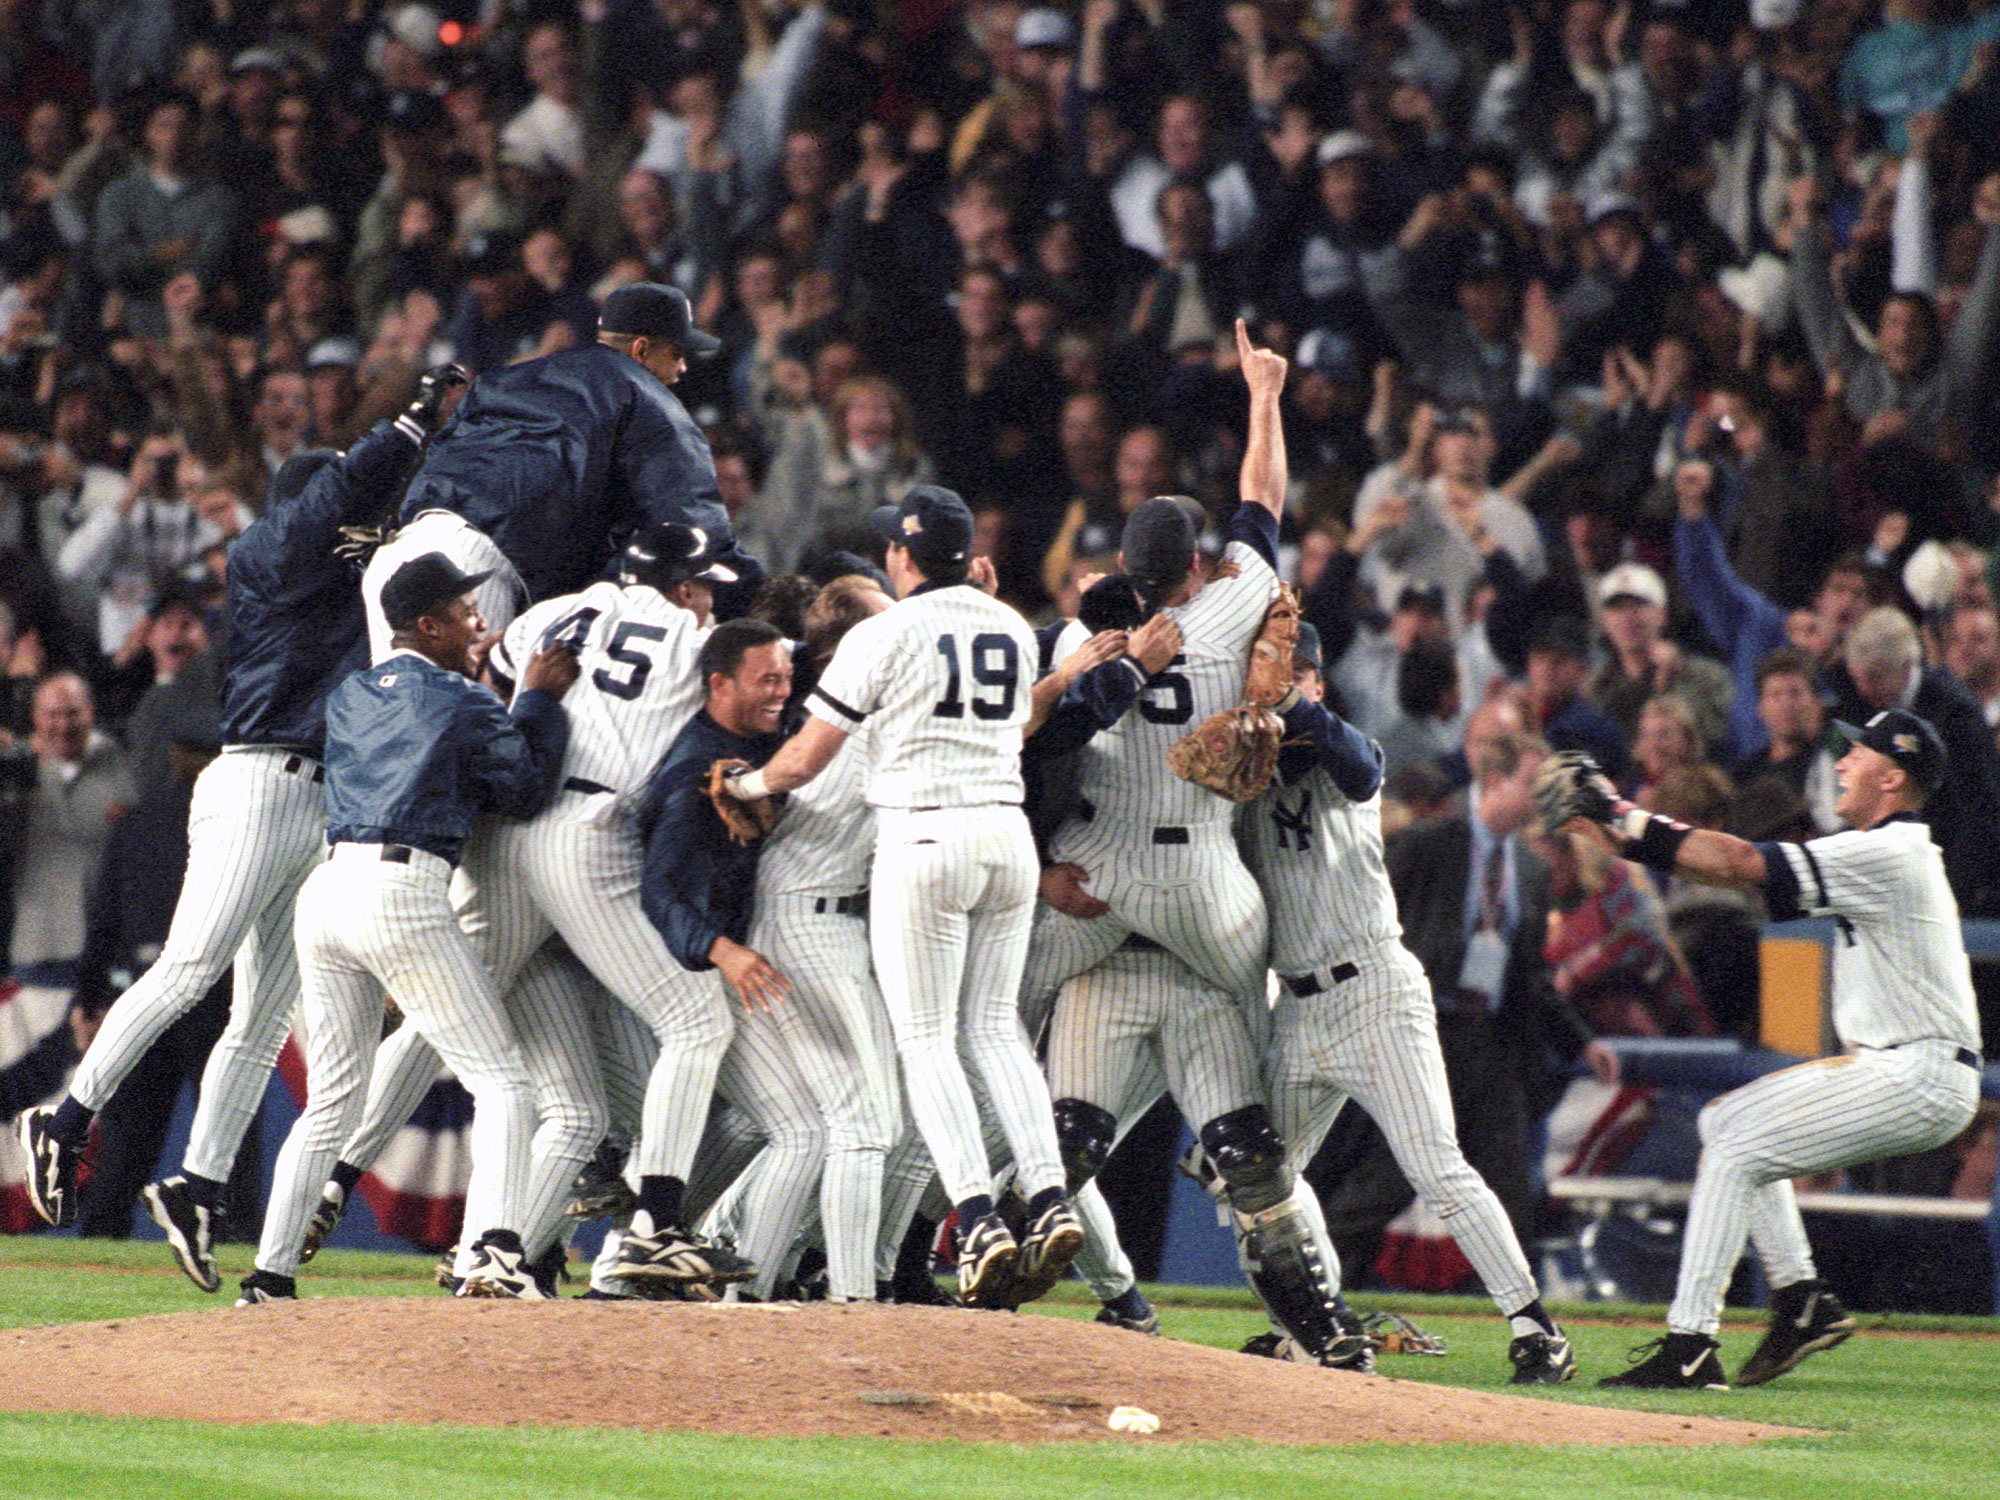 1996 Yankees and the historic World Series comeback that